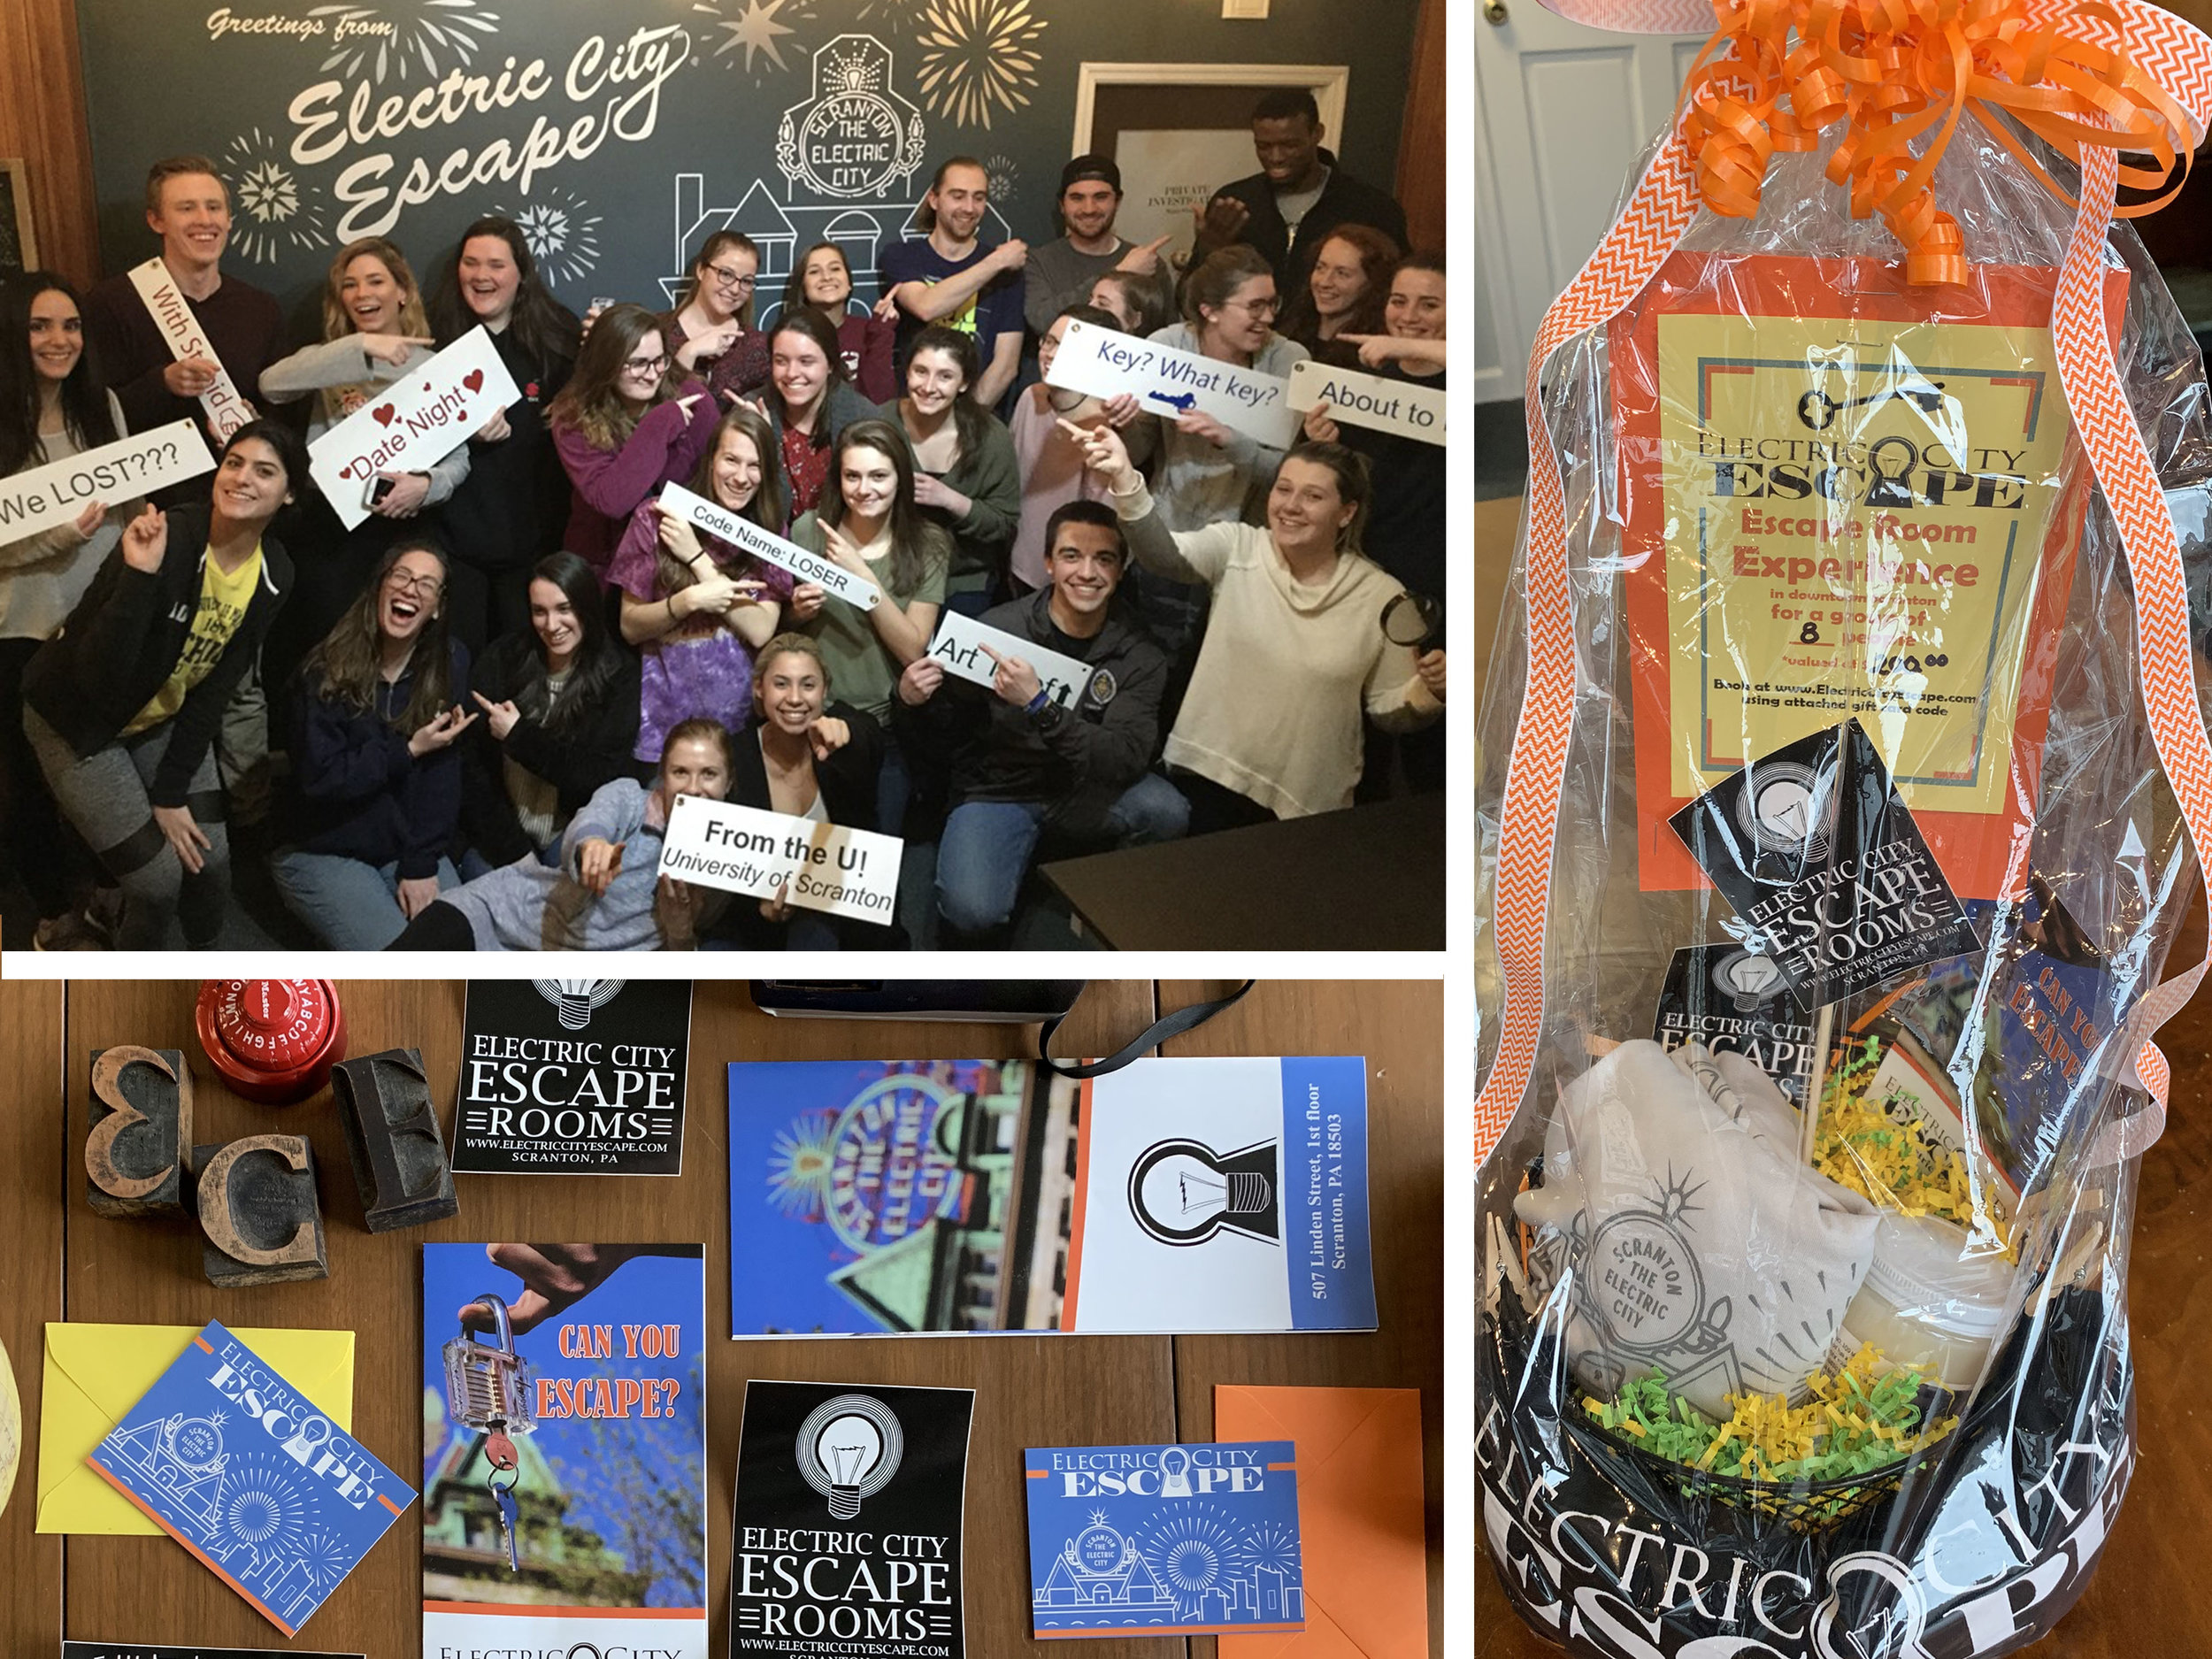 Gift Baskets, Gift Cards, and Fundraising Events! We love to give back to our community!